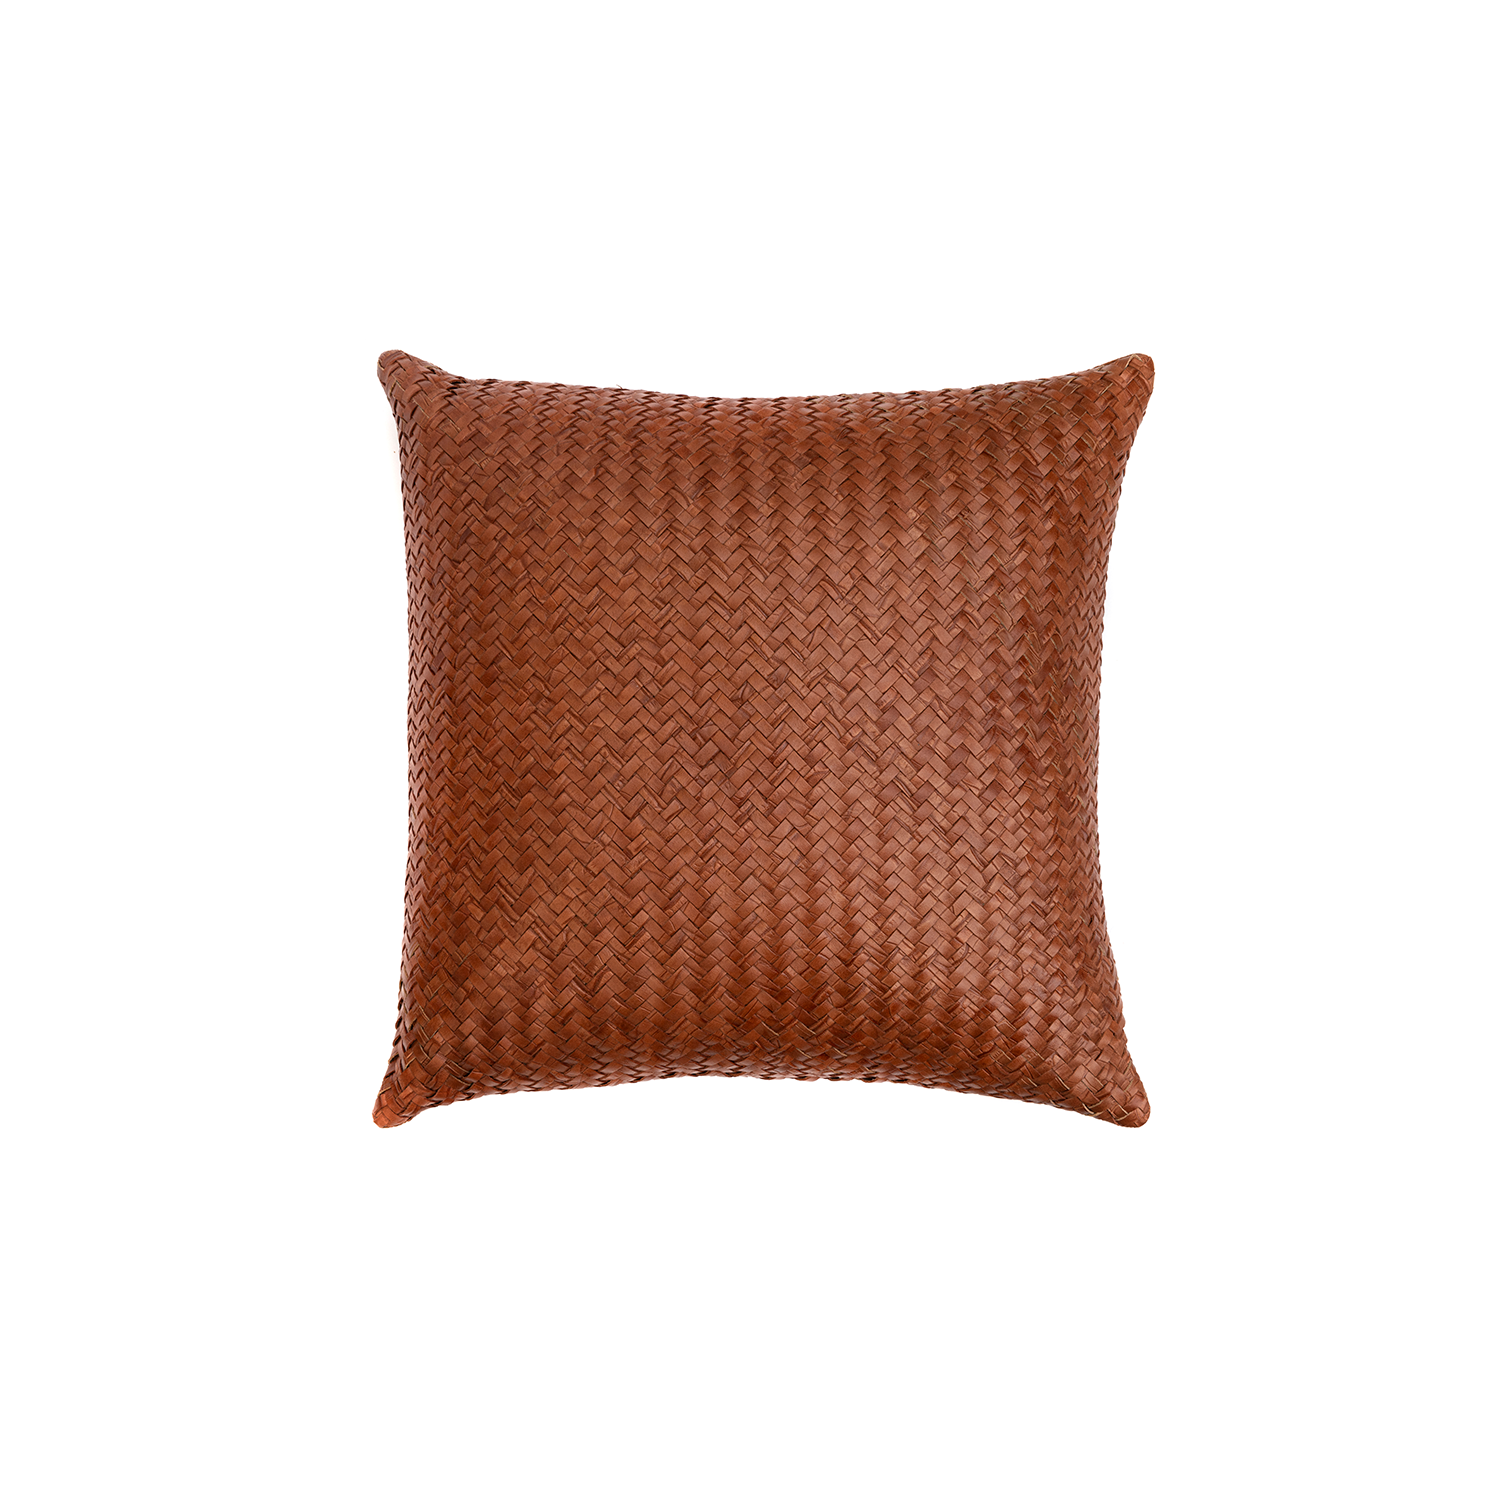 Aspen Croco Woven Leather Cushion Square - The Aspen Croco Woven Leather Cushion is designed to complement an ambient with a natural and sophisticated feeling. This cushion style is available in pleated leather or pleated suede leather. Elisa Atheniense woven handmade leather cushions are specially manufactured in Brazil using an exclusive treated leather that brings the soft feel touch to every single piece.   The front panel is handwoven in leather and the back panel is 100% Pes, made in Brazil.  The inner cushion is available in Hollow Fibre and European Duck Feathers, made in the UK.  Please enquire for more information and see colour chart for reference.     | Matter of Stuff